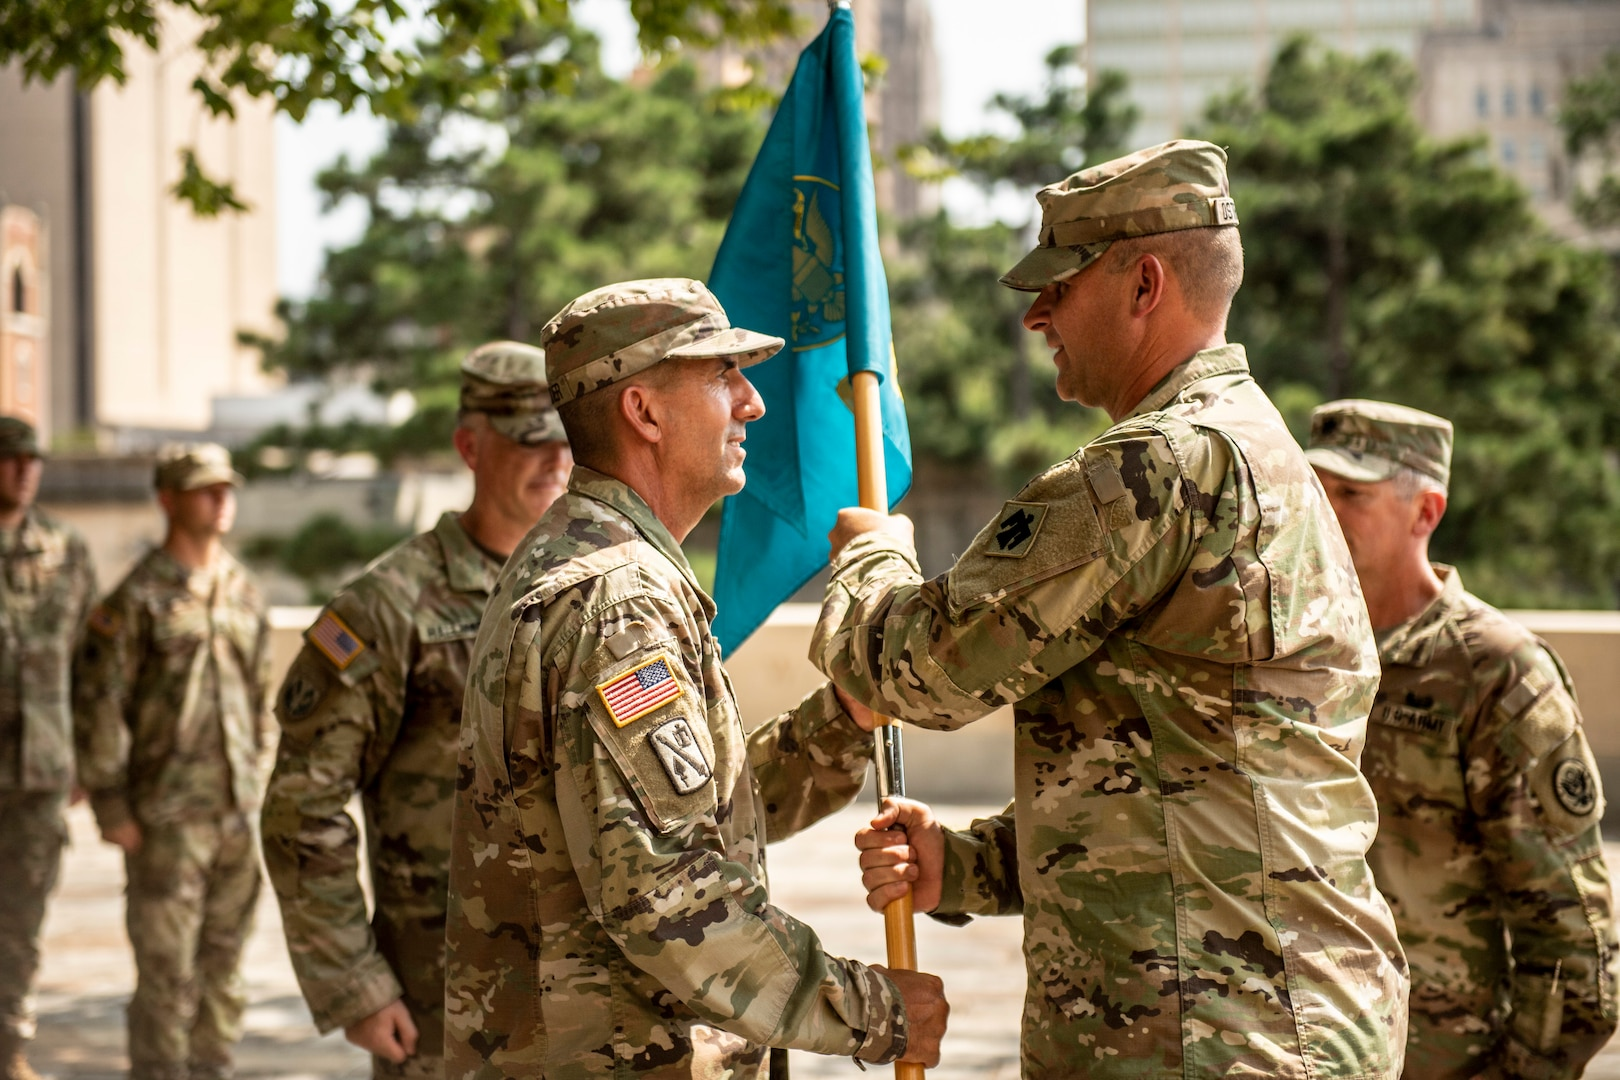 Oklahoma National Guard Maj. Barrett Alexander (left),  incoming commander with the 63rd CST,  receives the unit guidon from Col. Lars Ostervold (right), commander of the 90th Troop Command, during a change of command ceremony at the Oklahoma City Memorial and Museum, Sept. 1.  The passing of the guidon signifies the formal transfer of authority and responsibility of the unit to the new commander.